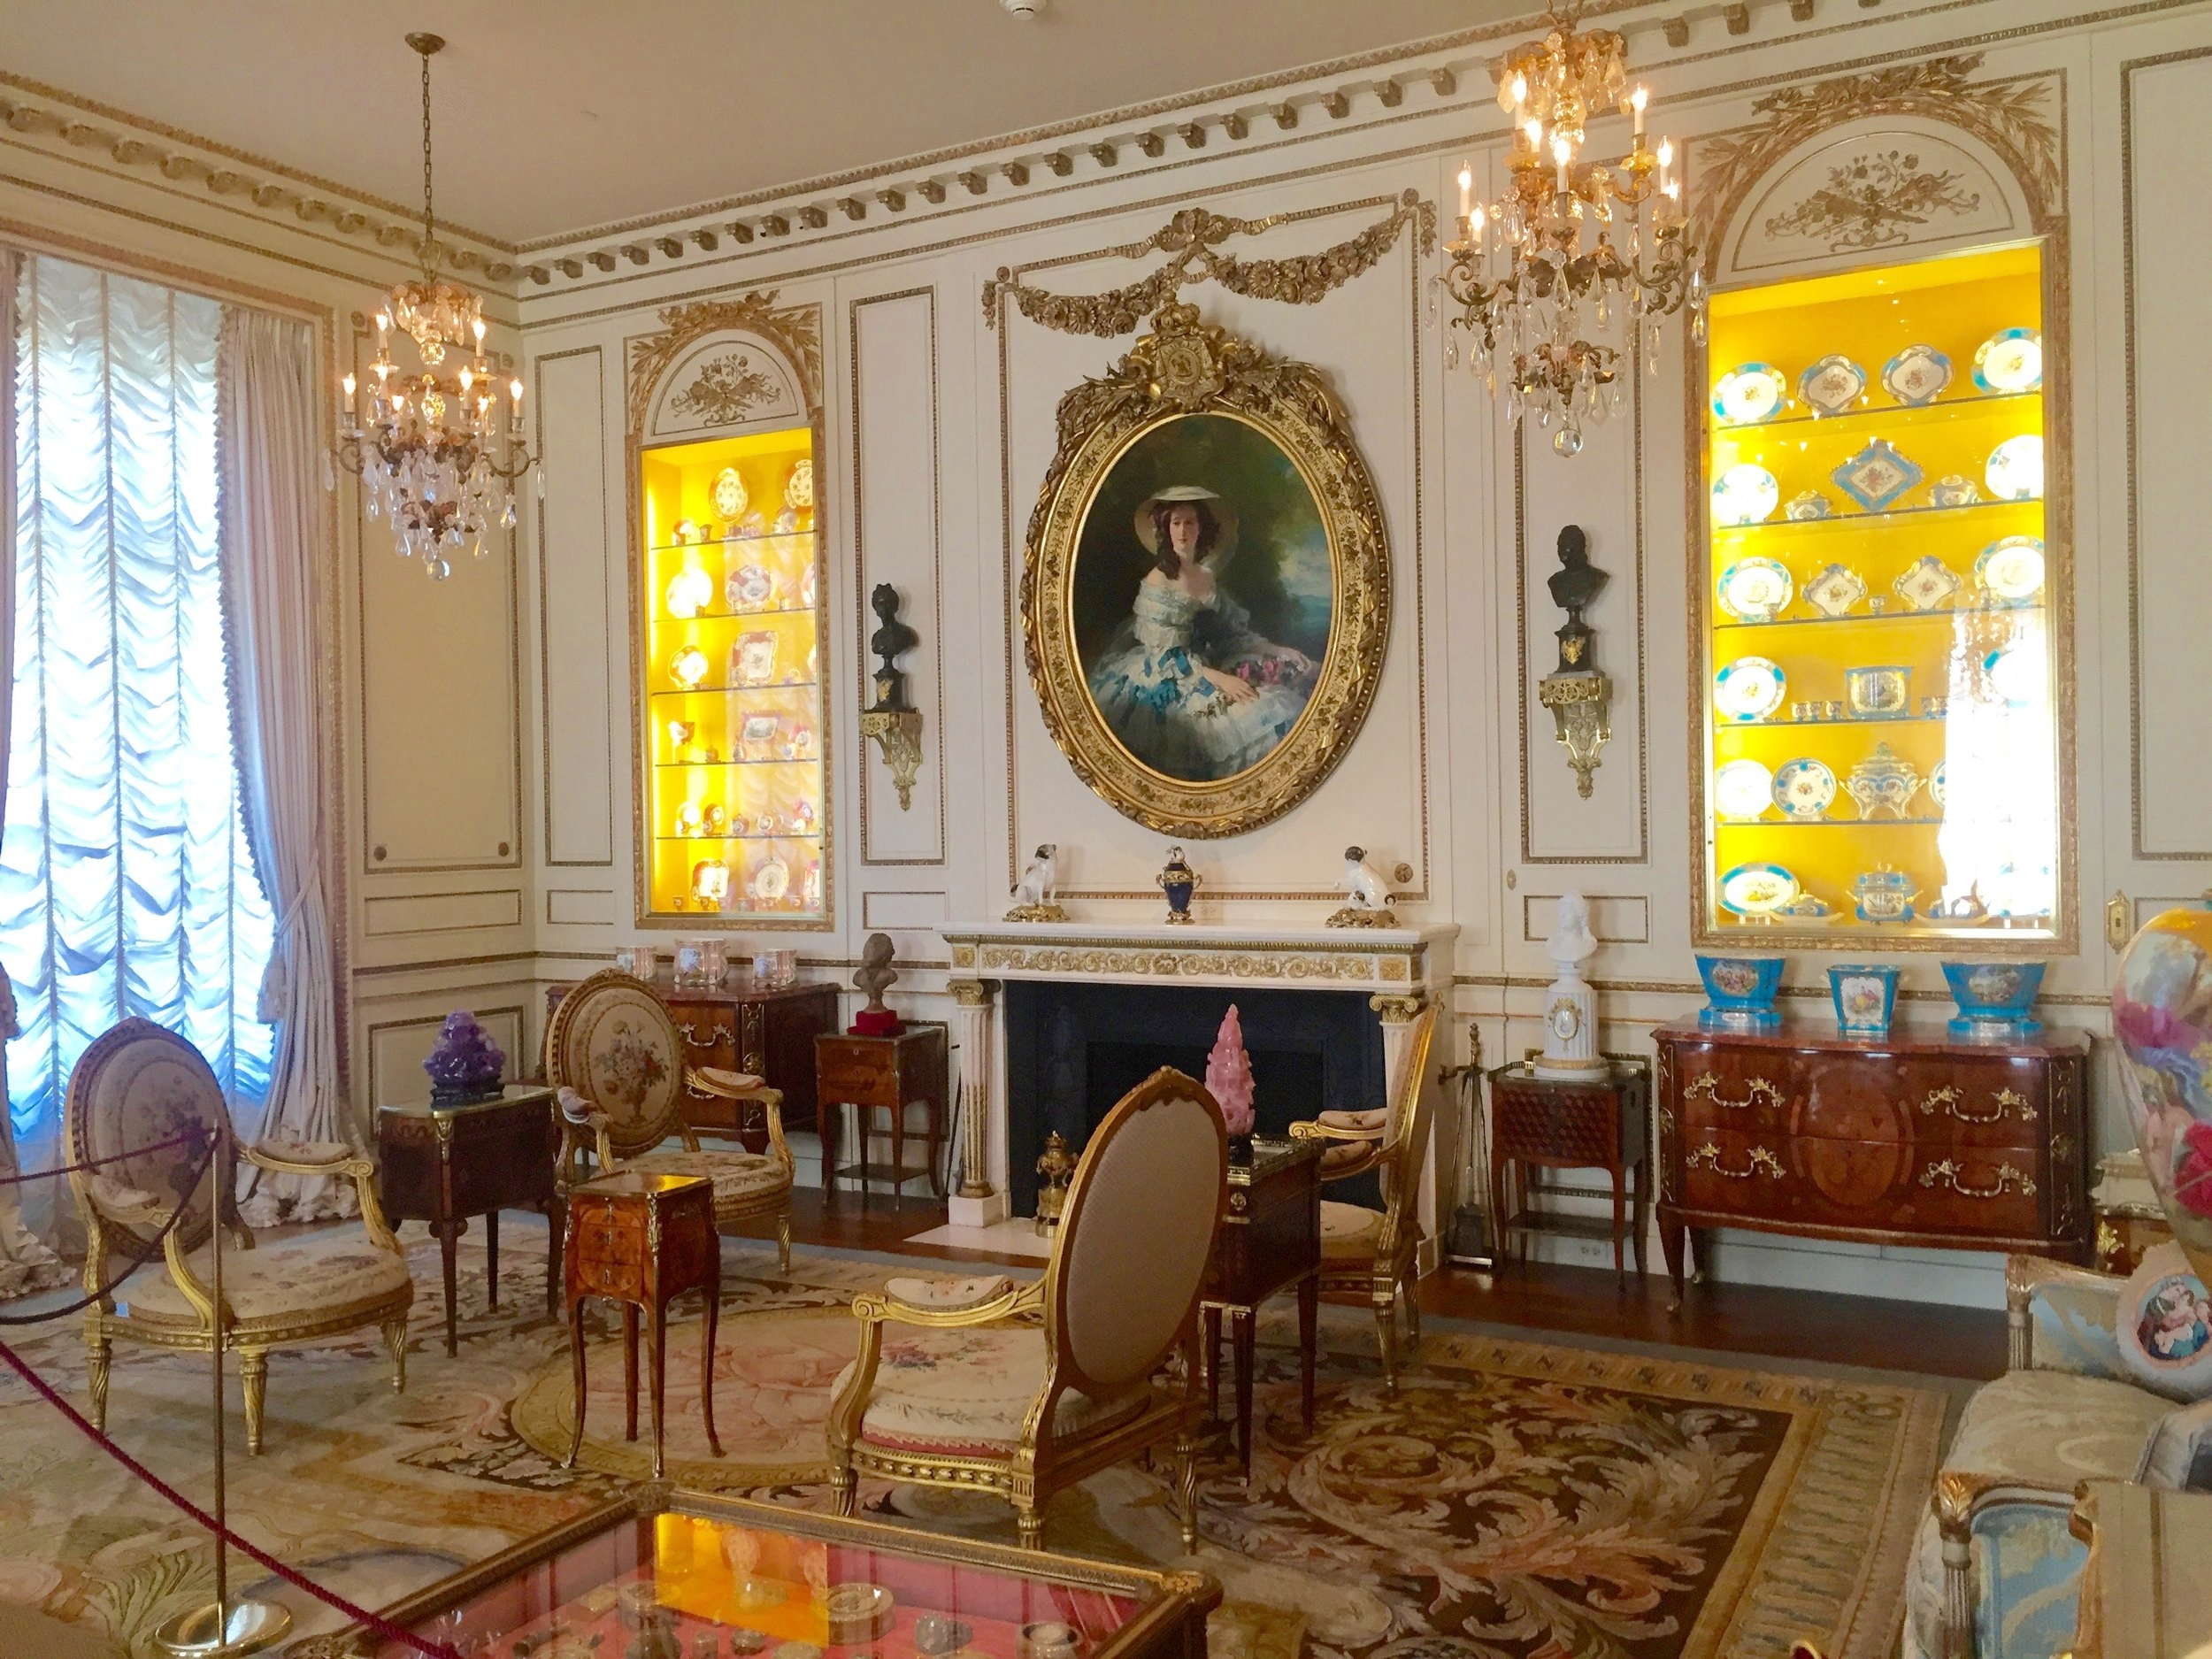 Tomorrow come celebrate the oncoming spring with  La Chandeleur or Crepe Day at Hillwood . Enjoy crepes, decorate your own version of priceless porcelain, and let me show you some of our incredible French treasures when I give a family-focused gallery talk at 10:30 and tours at 11:30 and 1:30. Come join me!